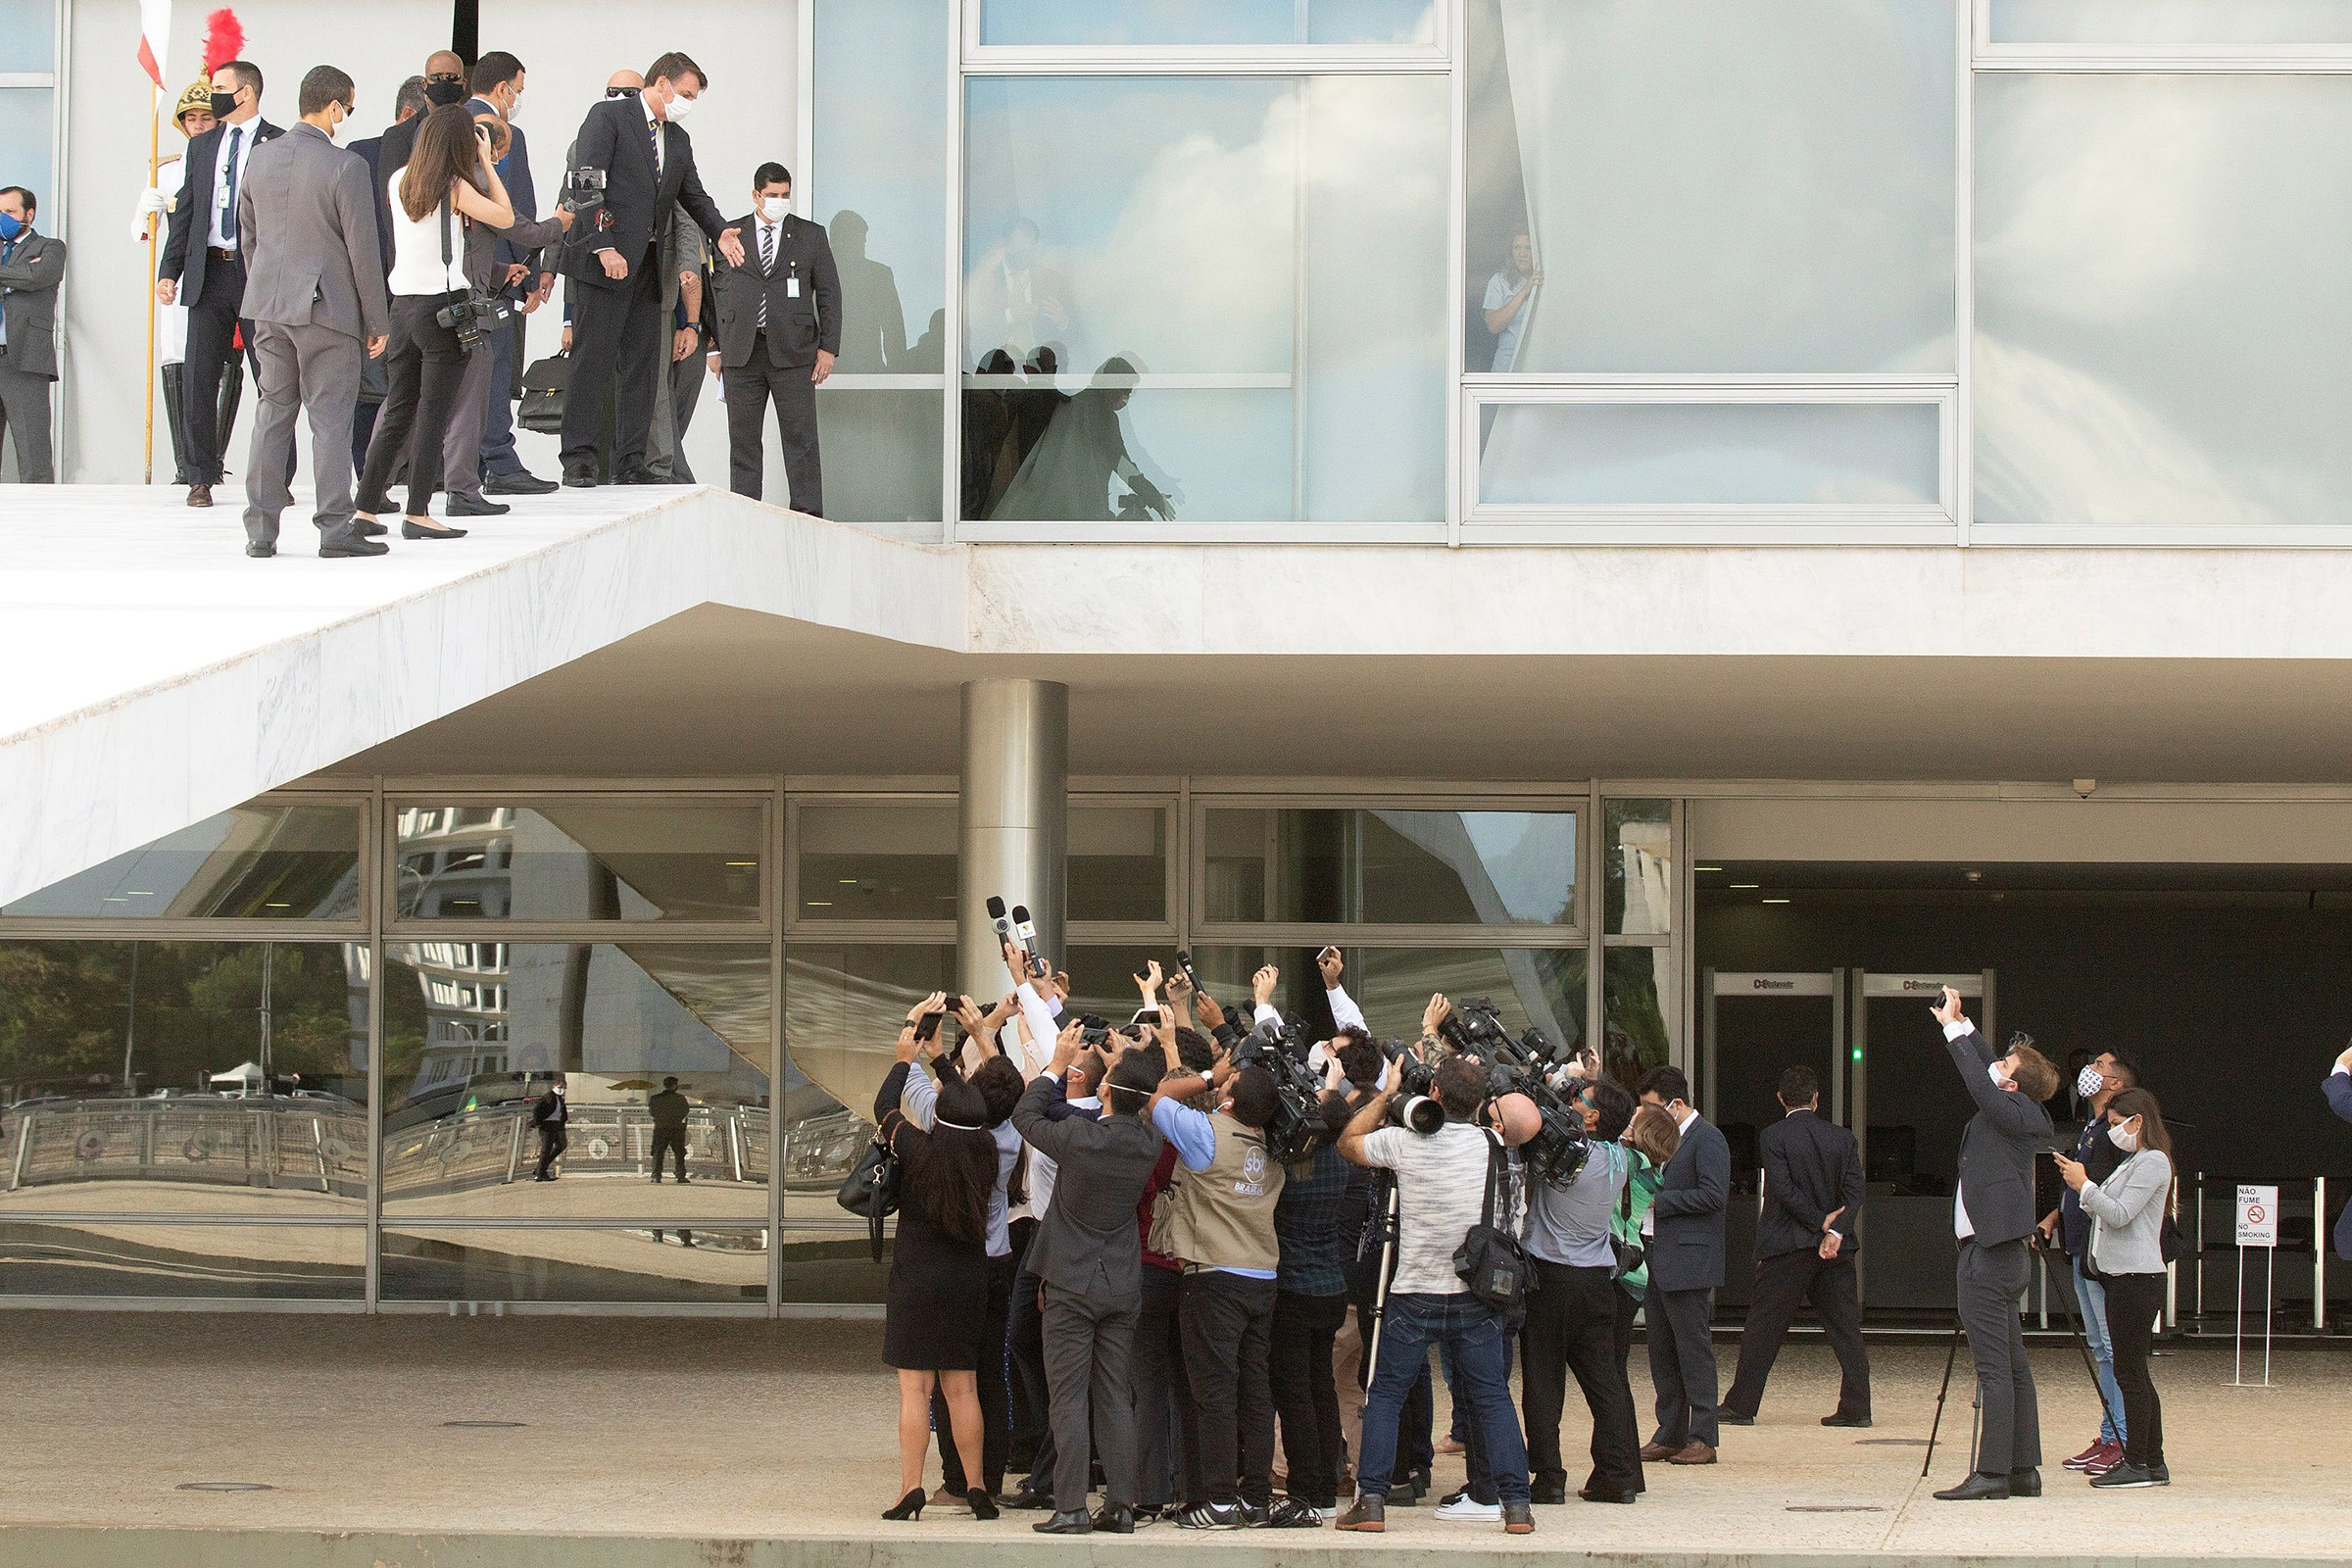 Brazil's far-right President Bolsonaro addresses journalists from outside the Planalto Palace, the official presidential workplace, in Brasília on May 12 as cases of COVID-19 surge across the country